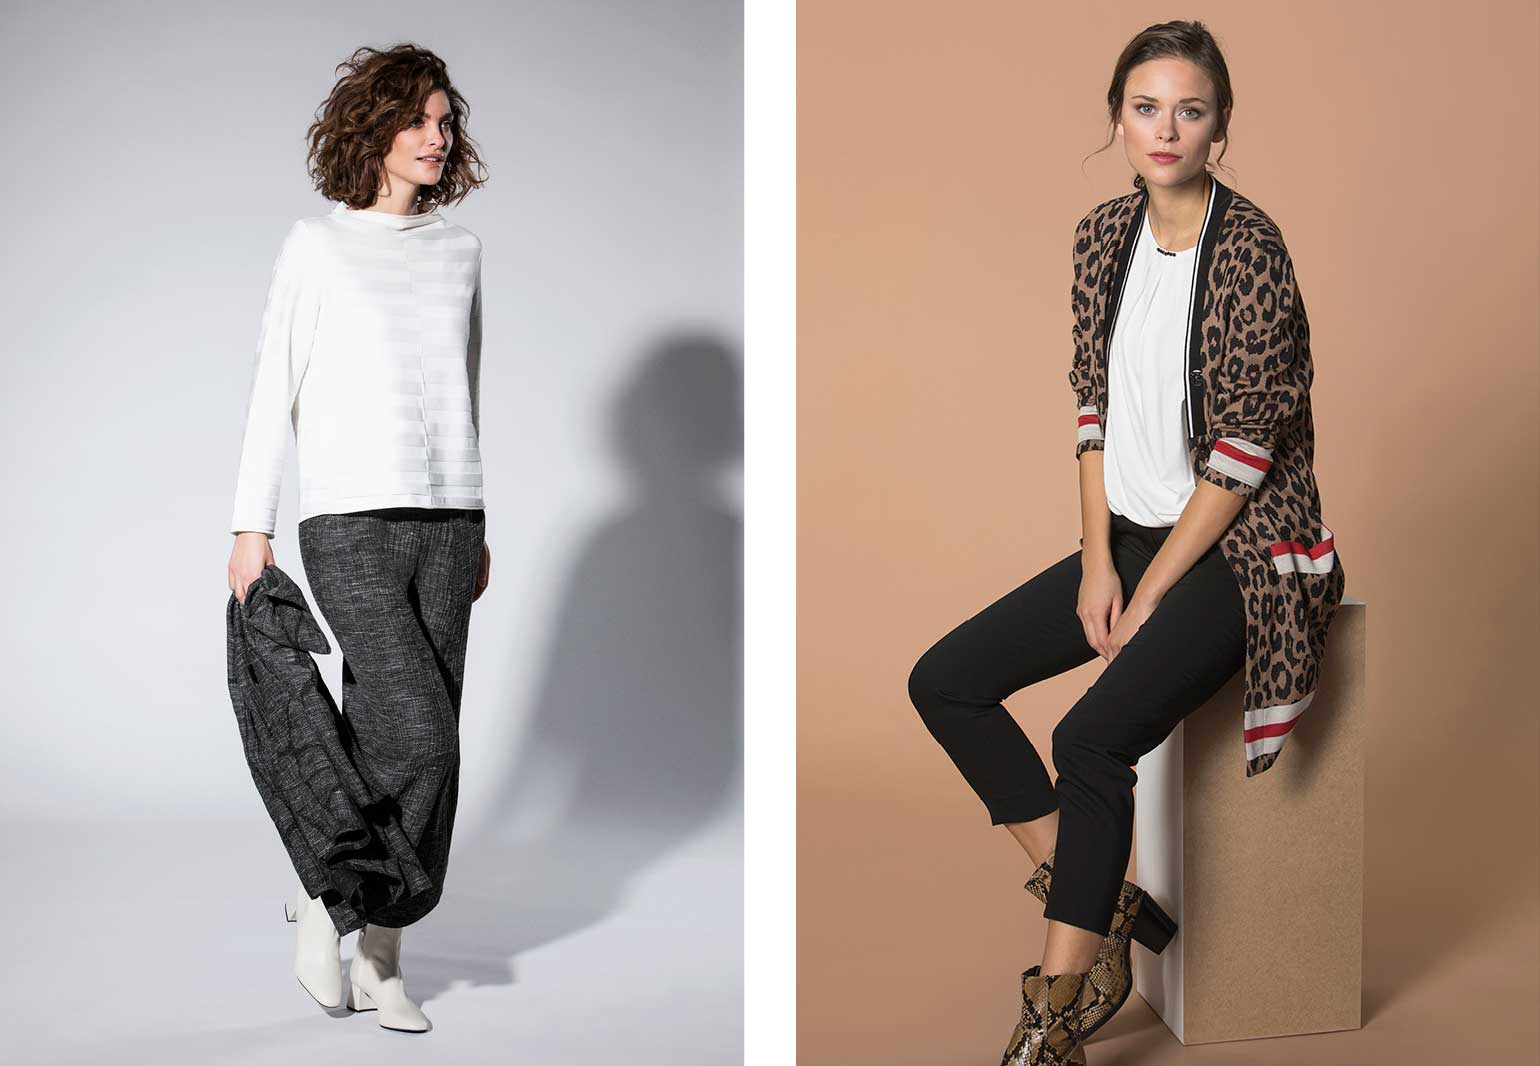 Personal styling at Hoopers means it's all about you